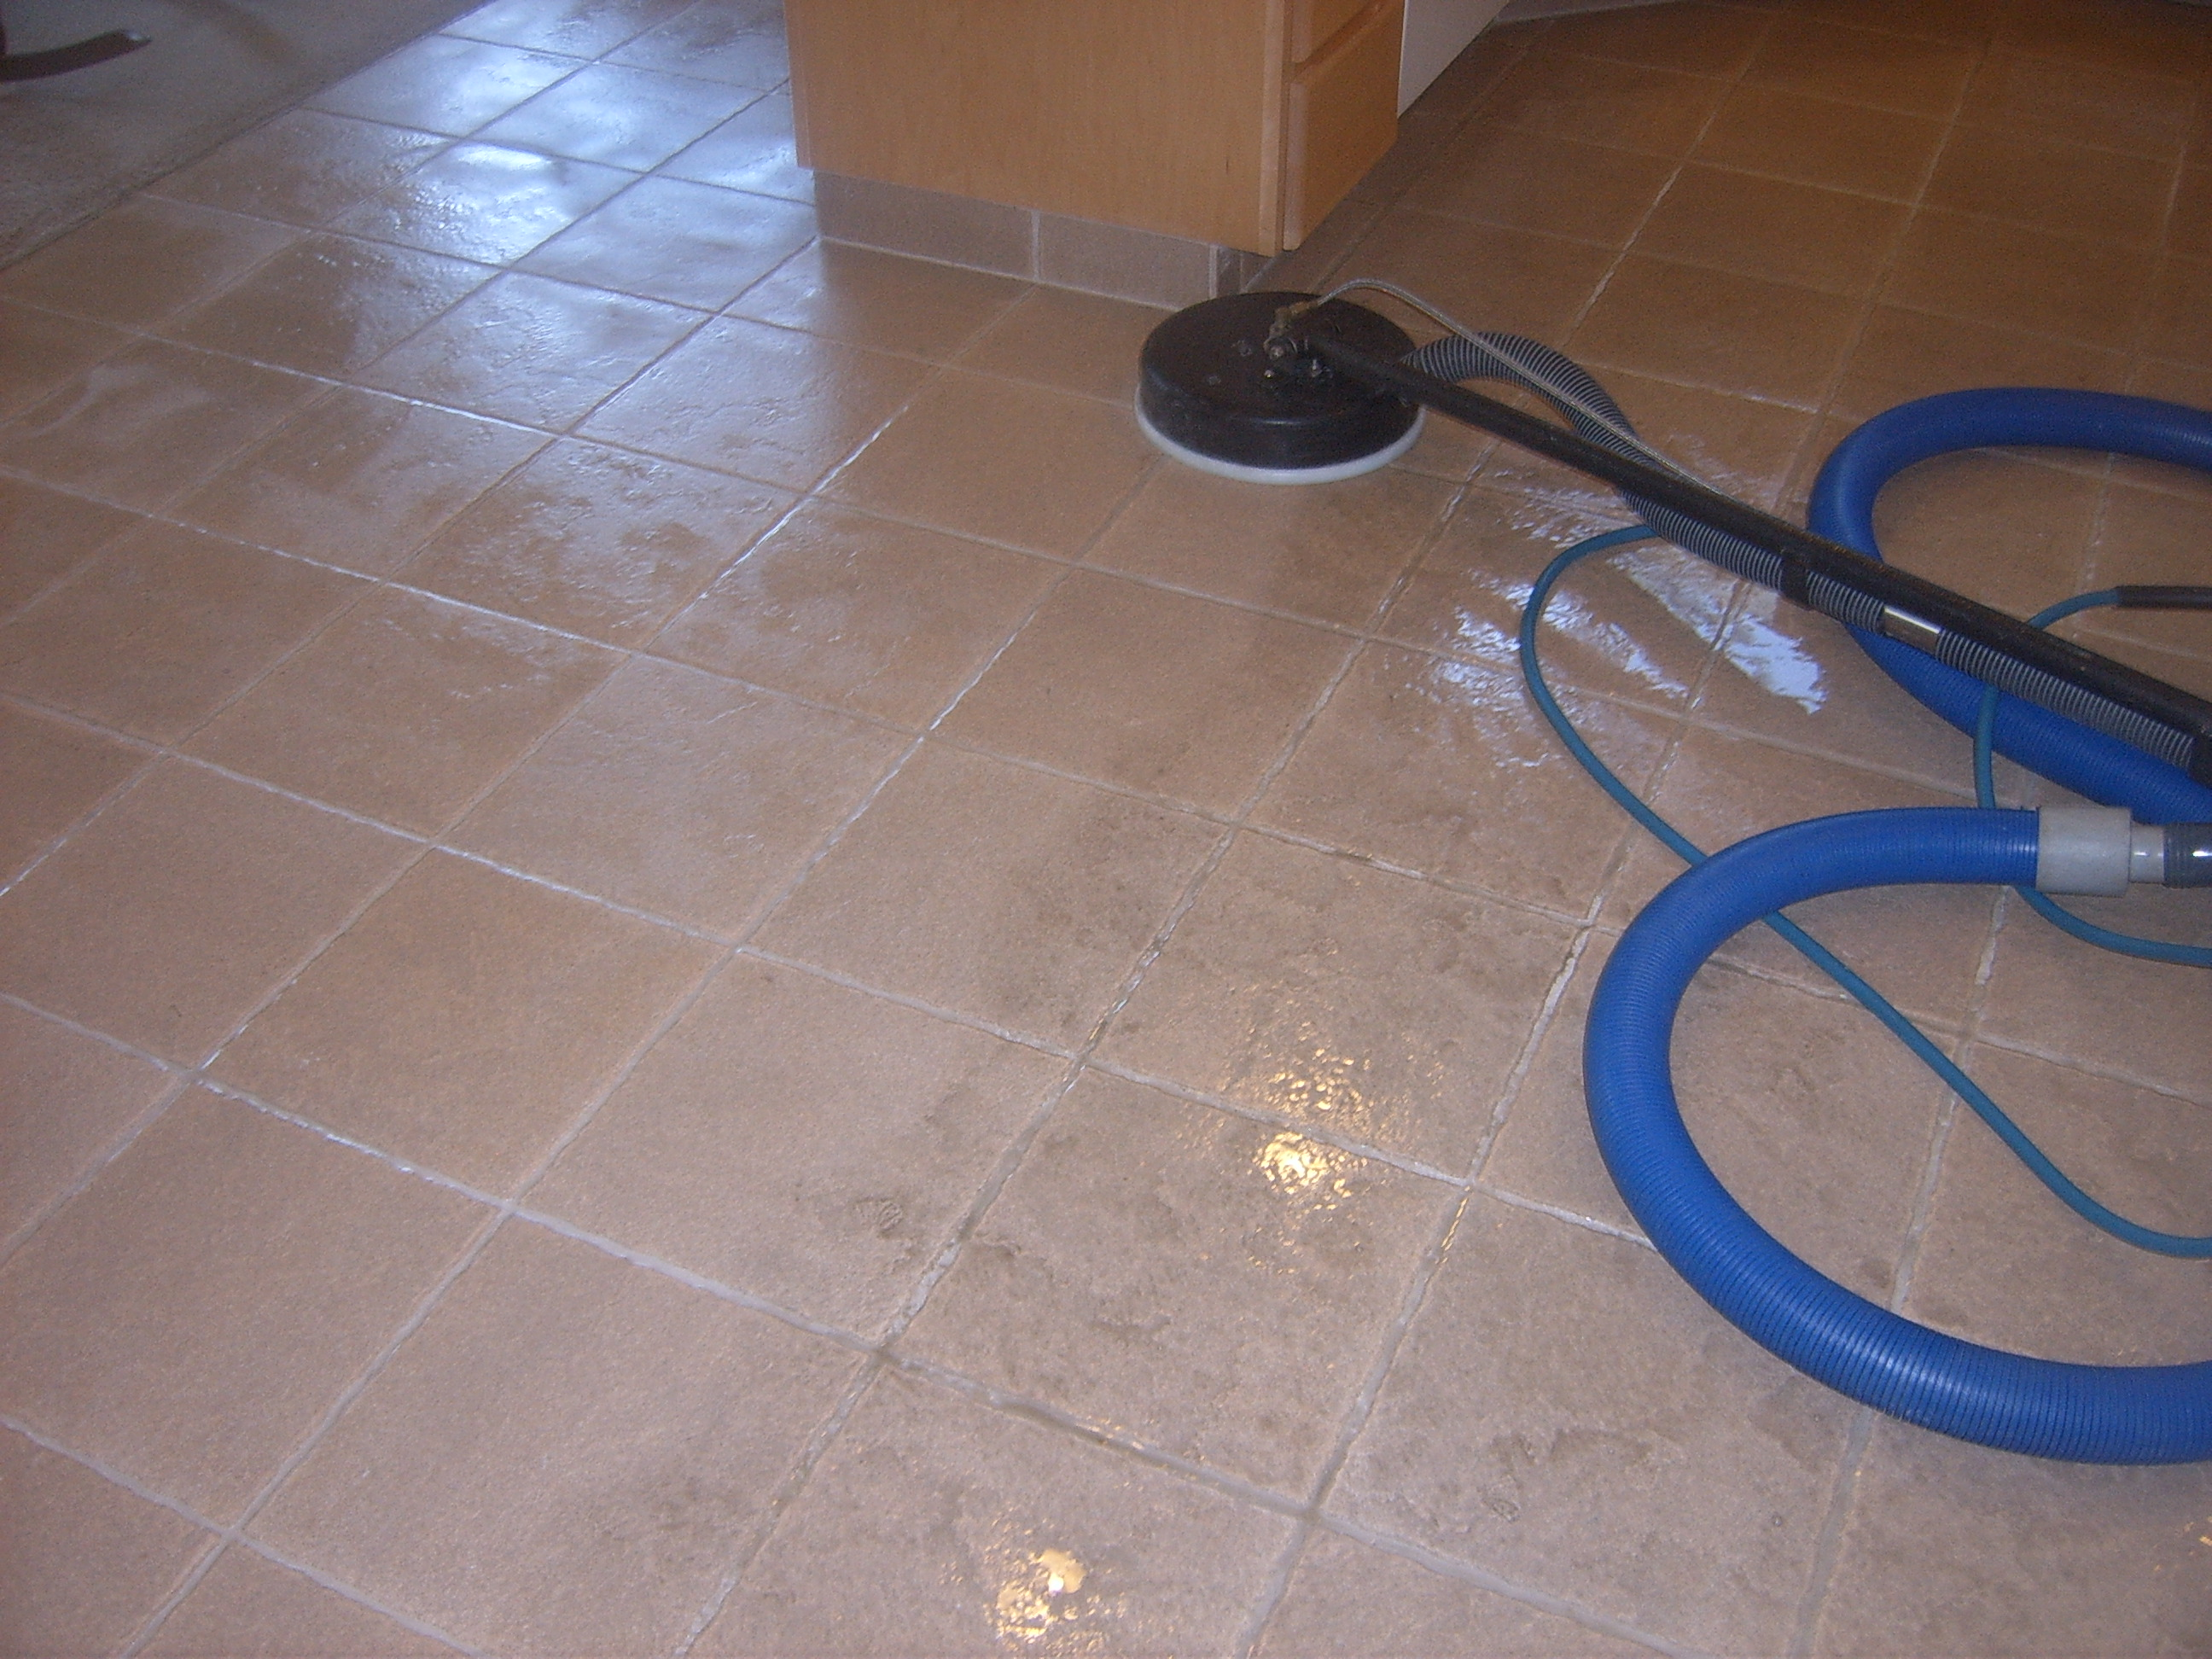 Rainbow carpet cleaning ceramic tile grout cleaning ceramic tile grout cleaning tile cleaining in a kitchen can you see the difference dailygadgetfo Gallery